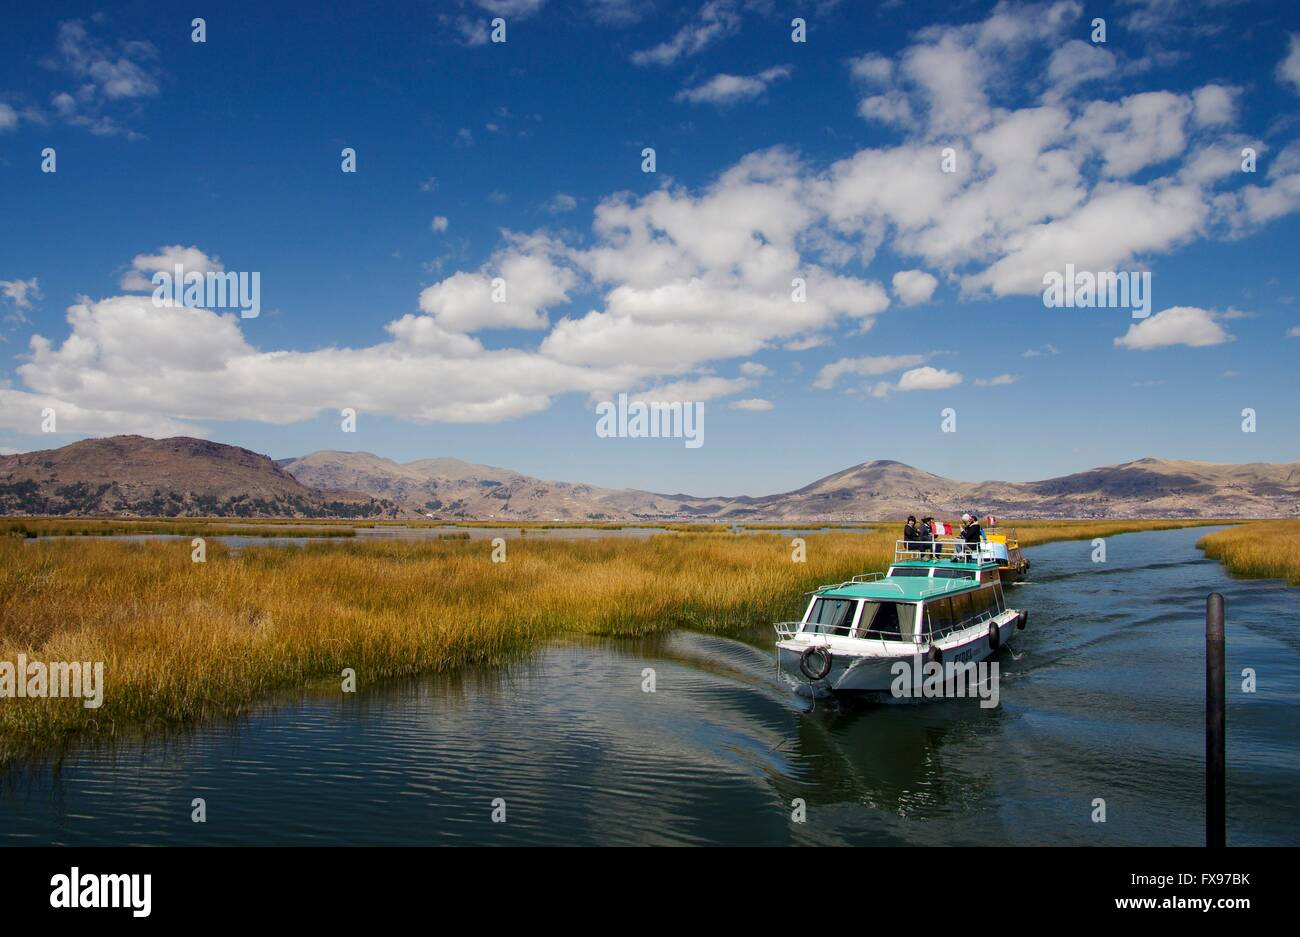 A motor boat on Lake Titicaca takes tourists from Puno's harbour to the reed islands of the Uros people. Picture - Stock Image